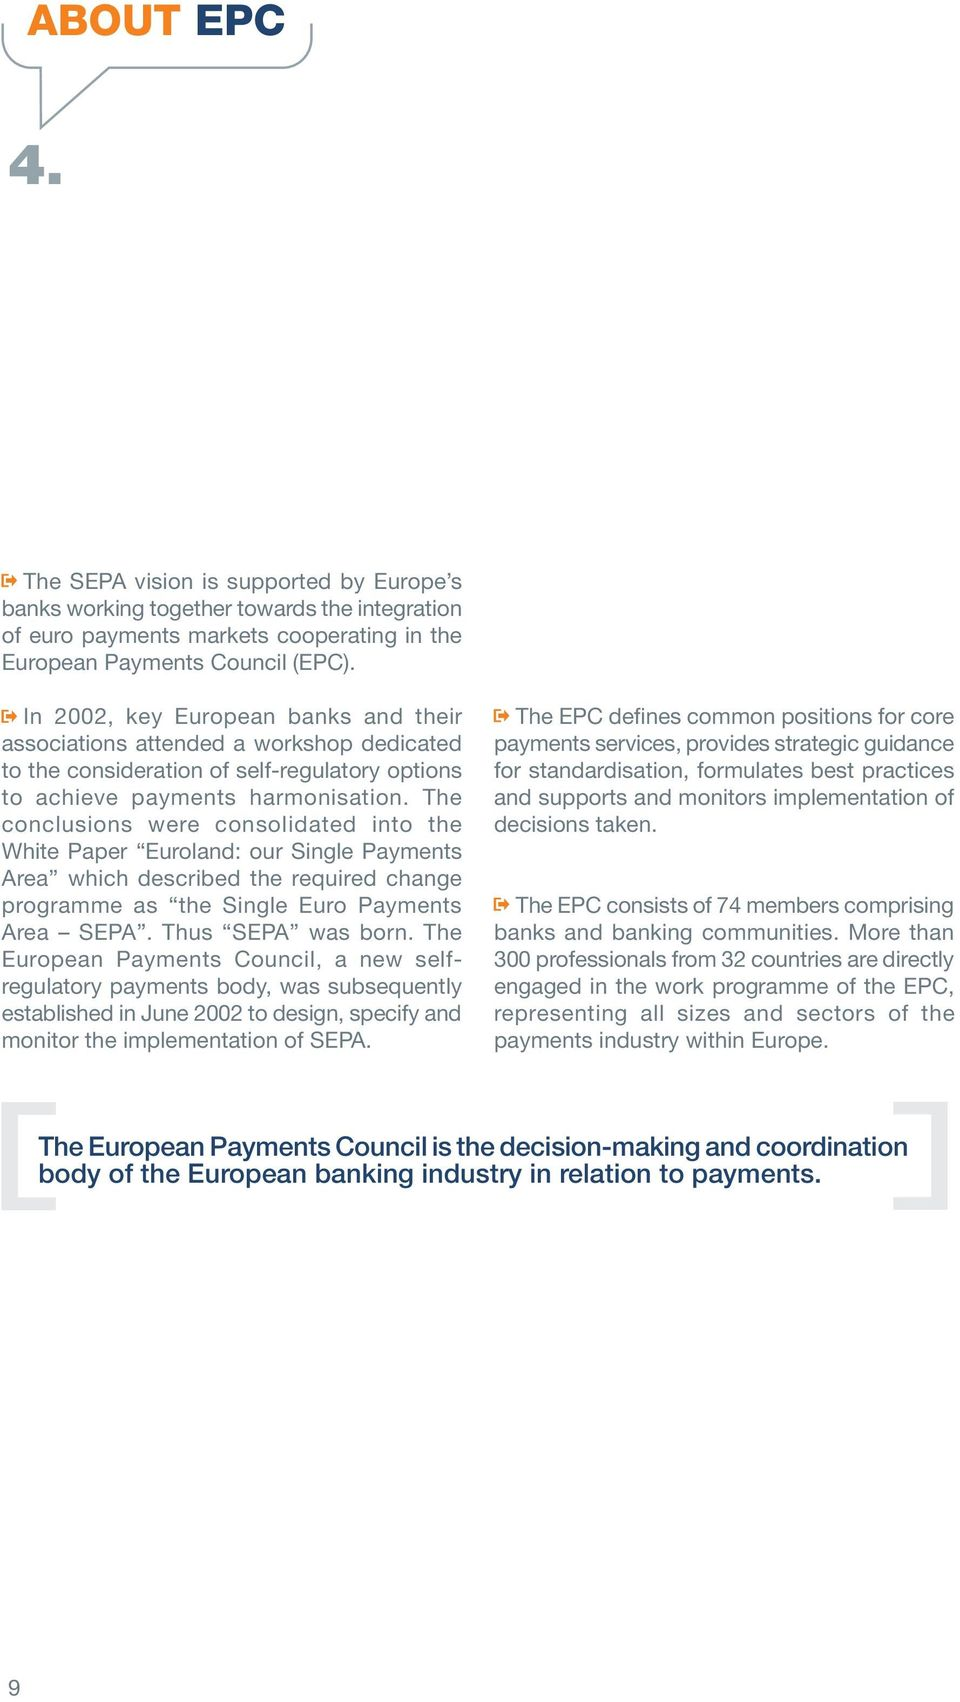 The conclusions were consolidated into the White Paper Euroland: our Single Payments Area which described the required change programme as the Single Euro Payments Area SEPA. Thus SEPA was born.